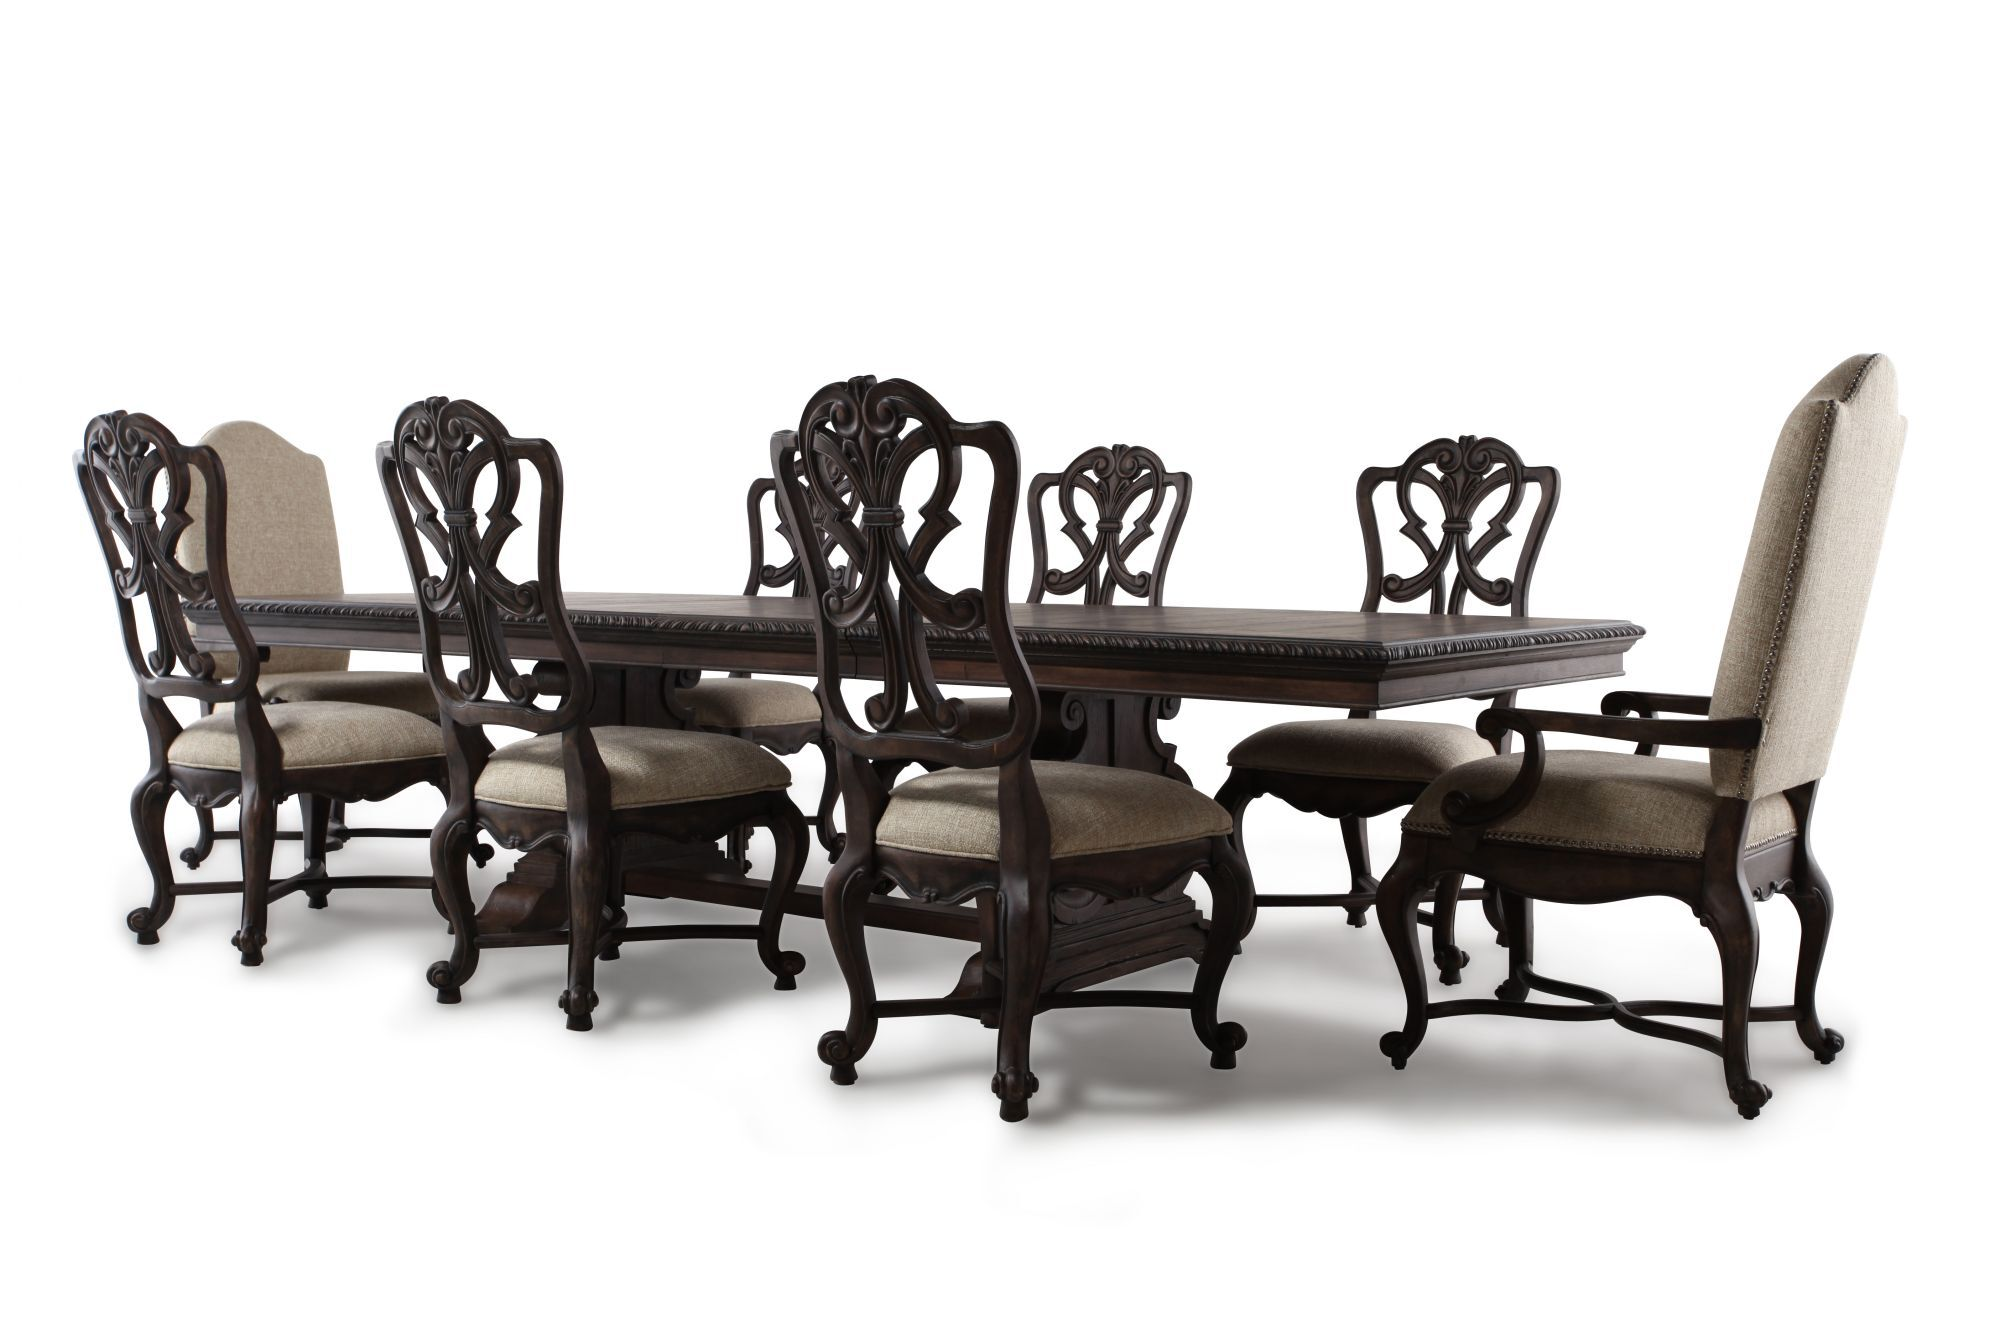 hooker rhapsody ninepiece dining set - Hooker Furniture Outlet